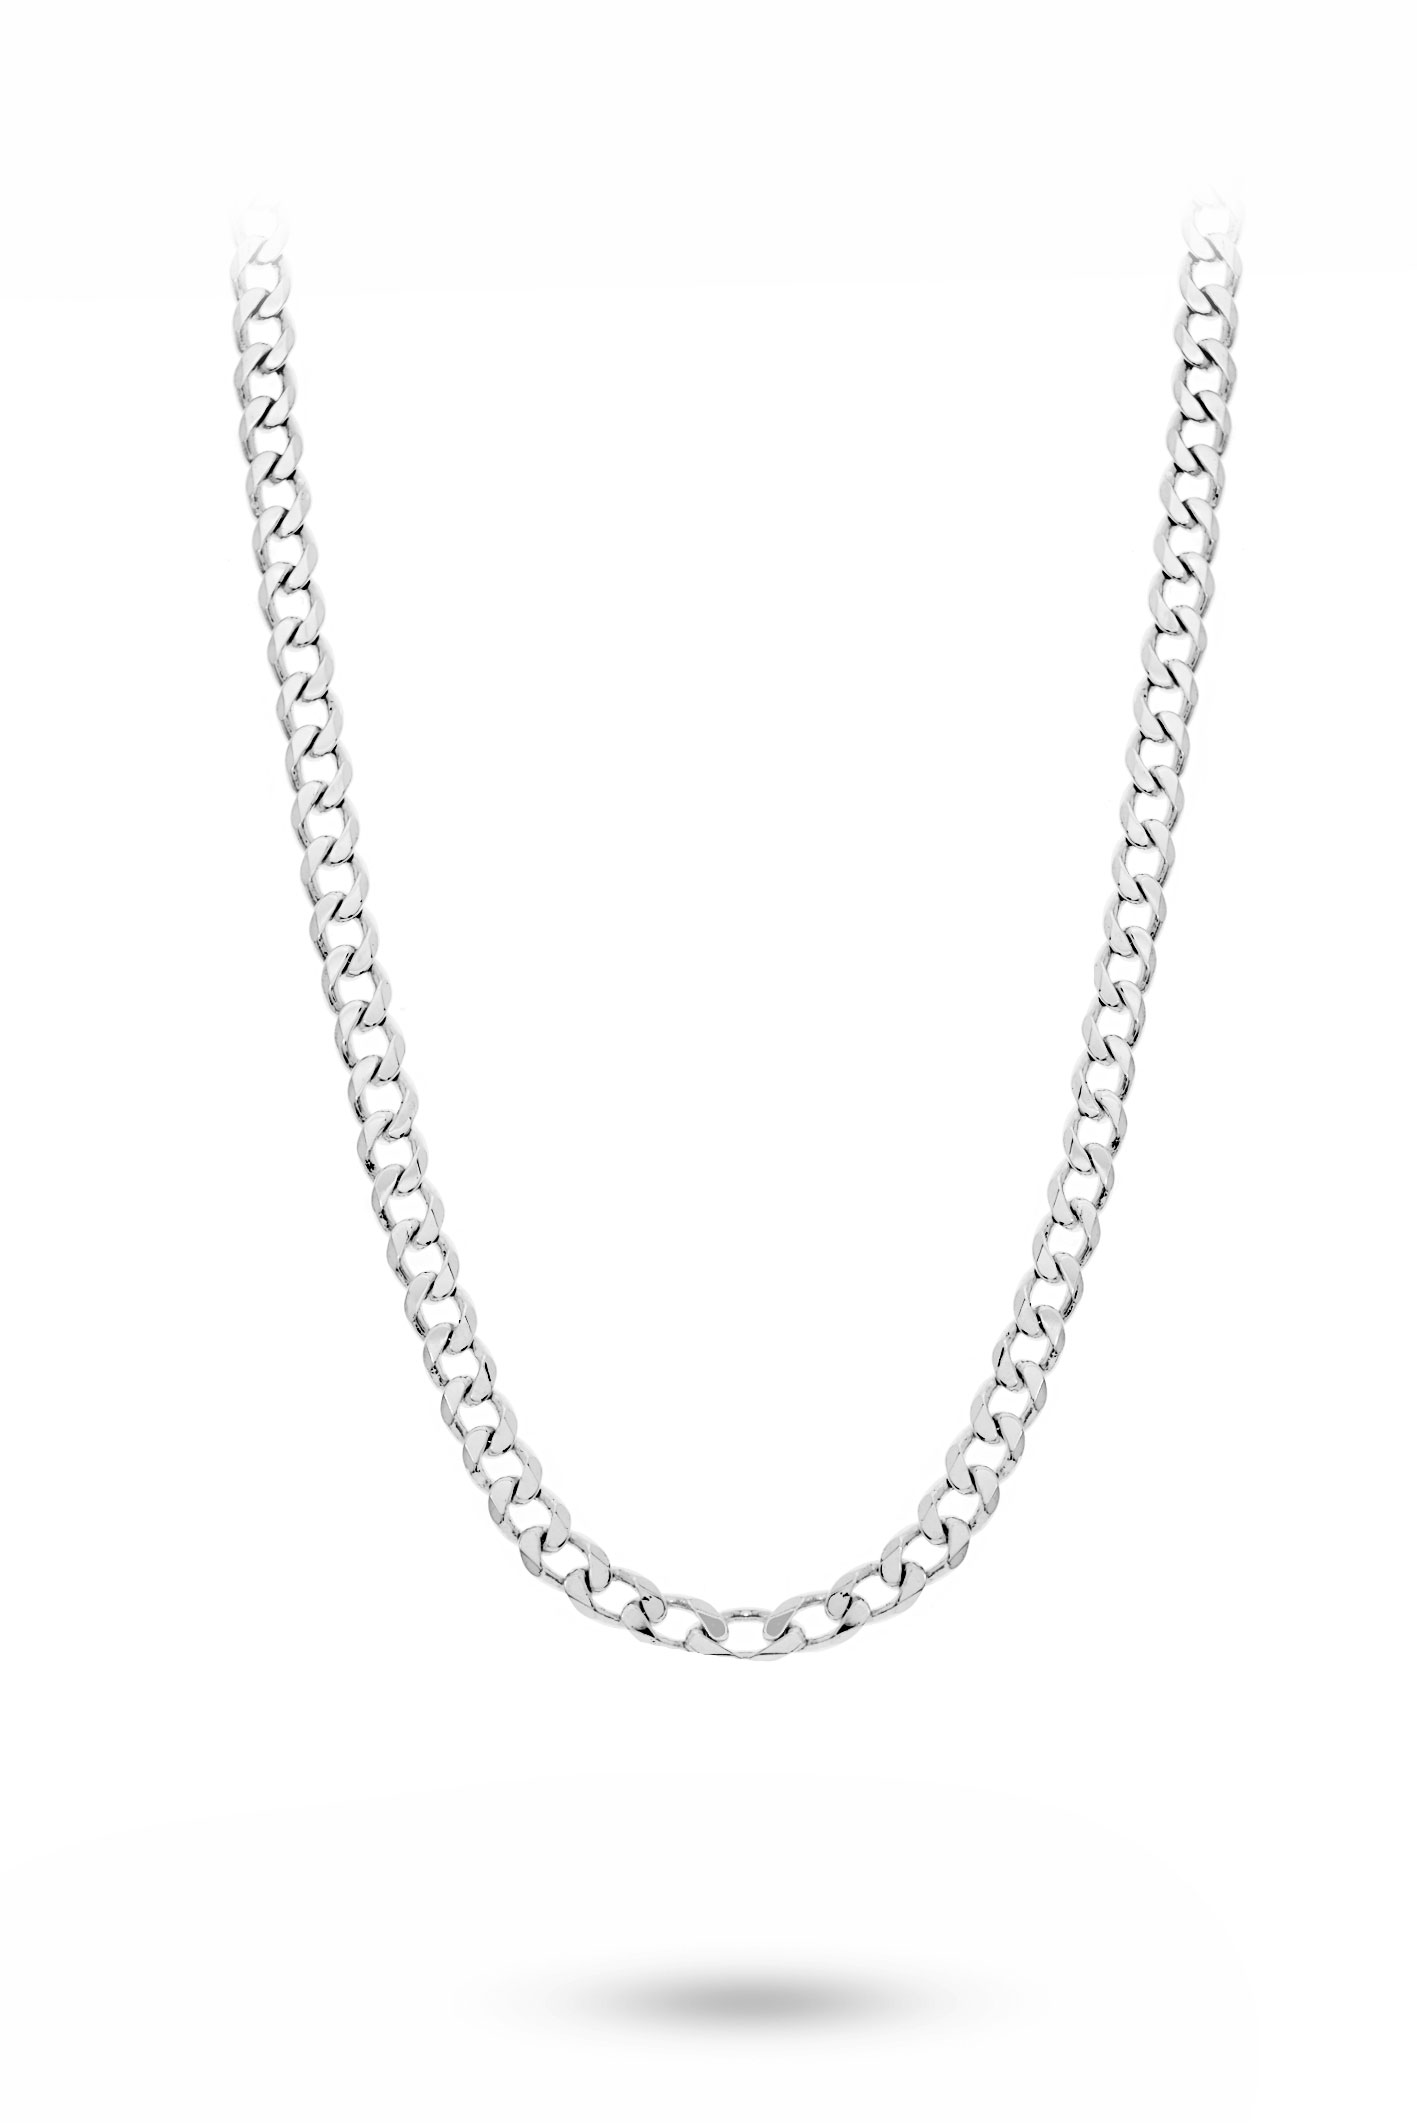 444-cuban-link-large-in-plated-silver-chain